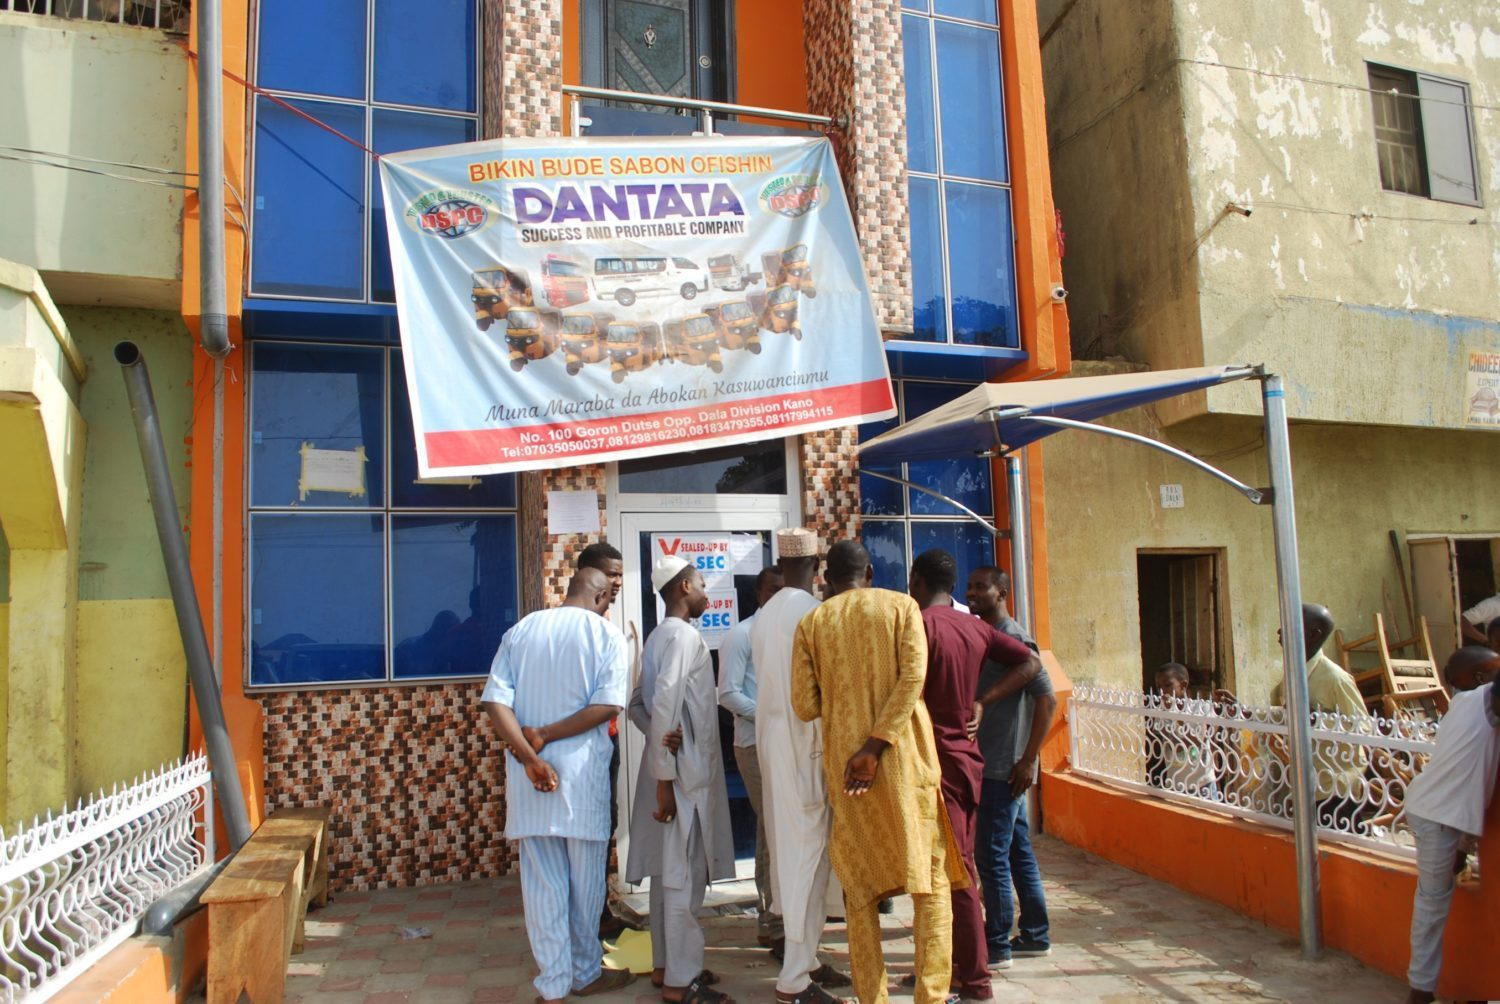 Dantata Success and Profitable Company